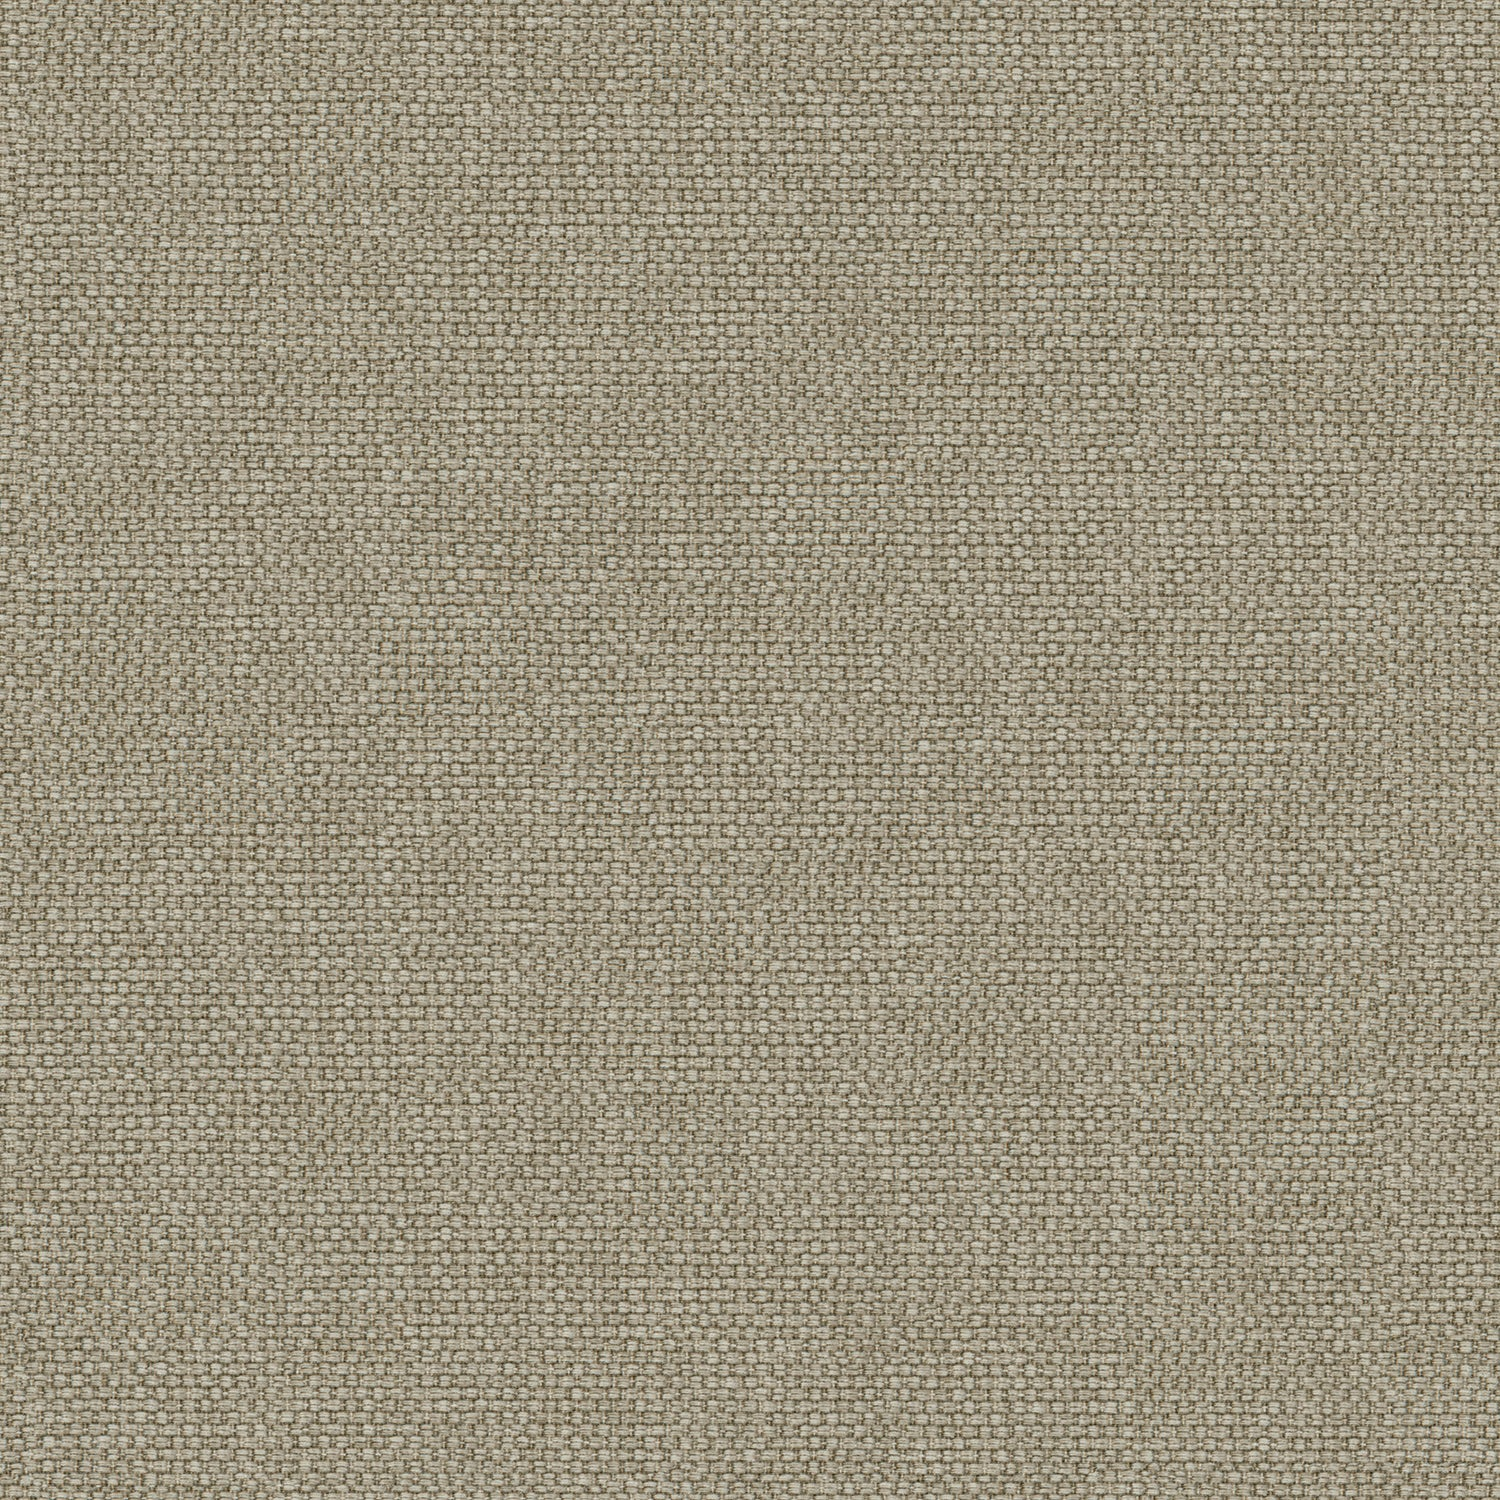 Neutral cotton fabric with a stain resistant finish for curtains and upholstery